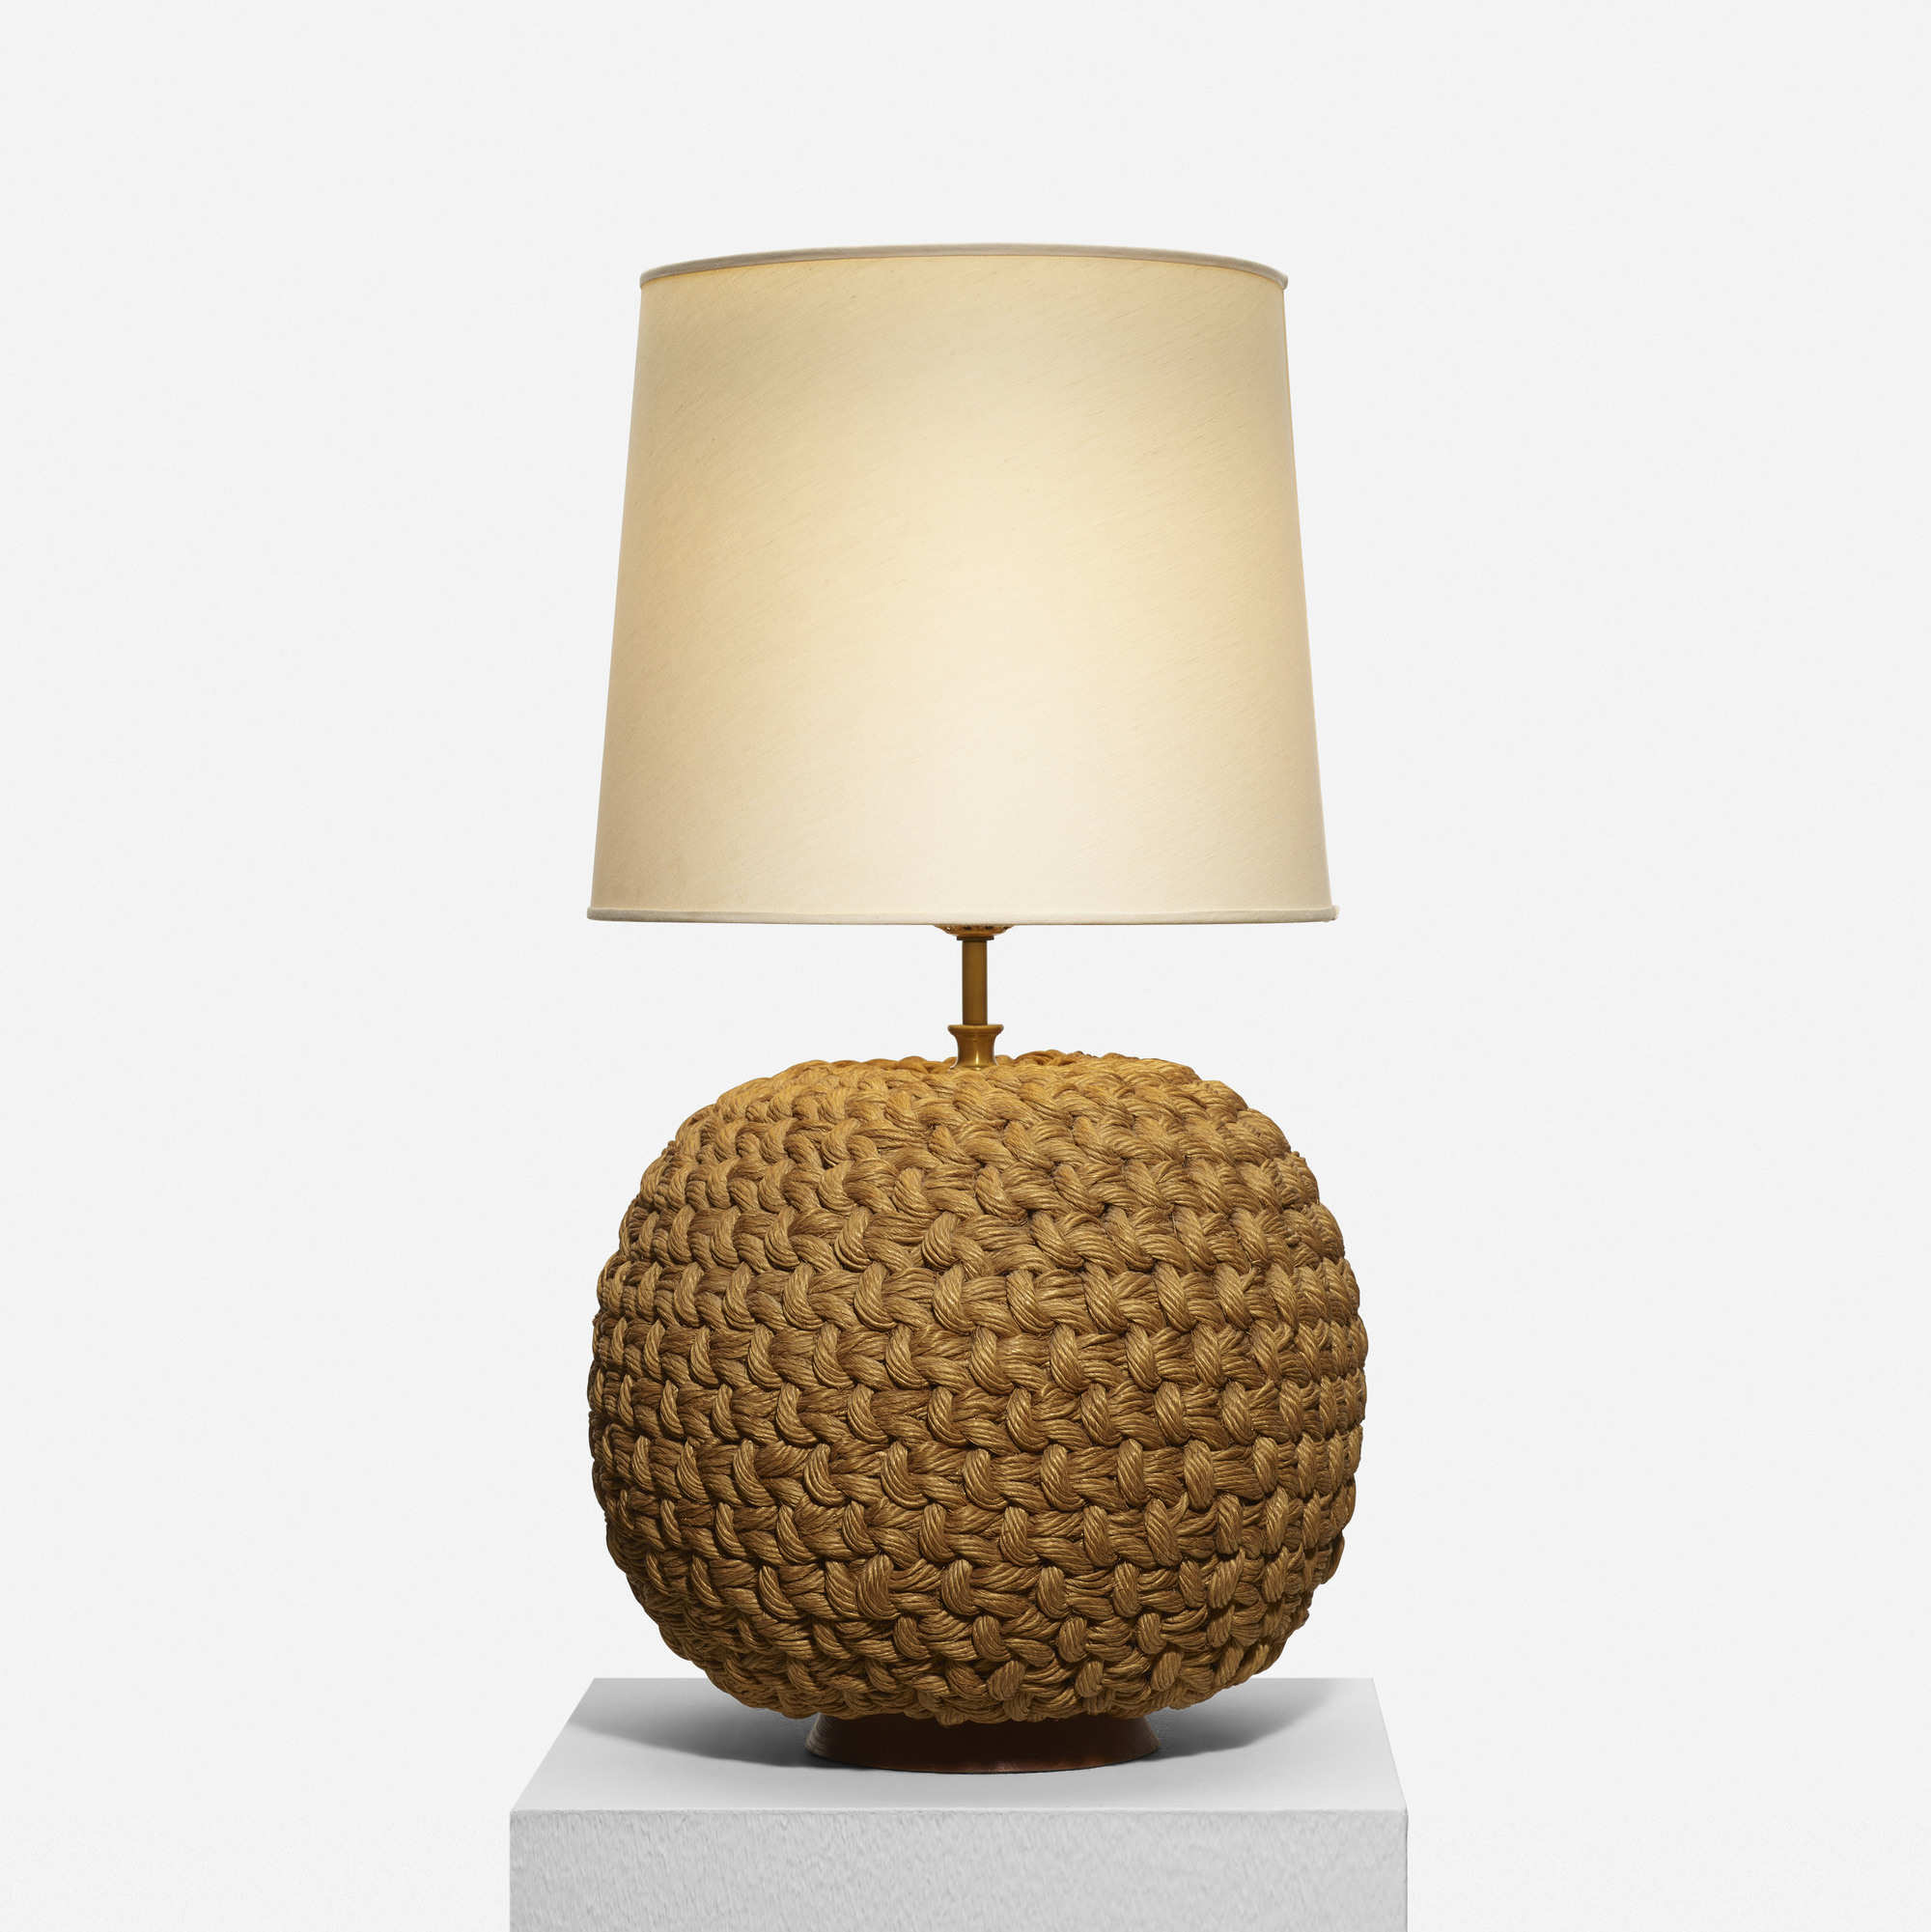 198: Selected by Samuel Marx / table lamp from the Morton D. May House (1 of 1)